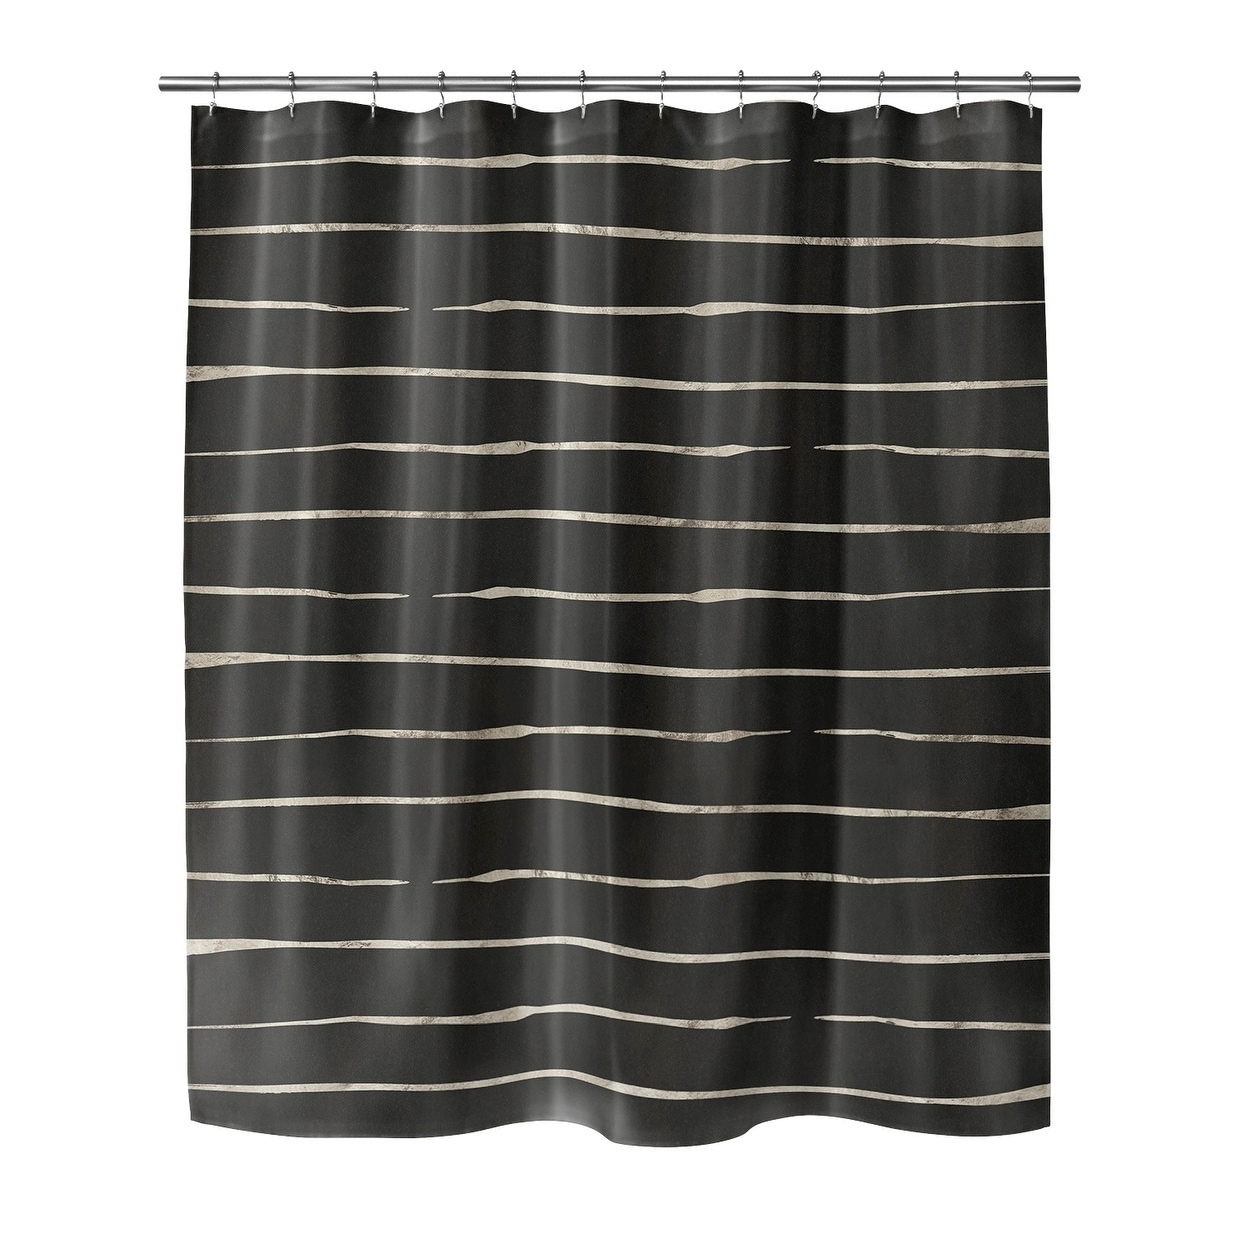 wavy abyss black small shower curtain by kavka designs